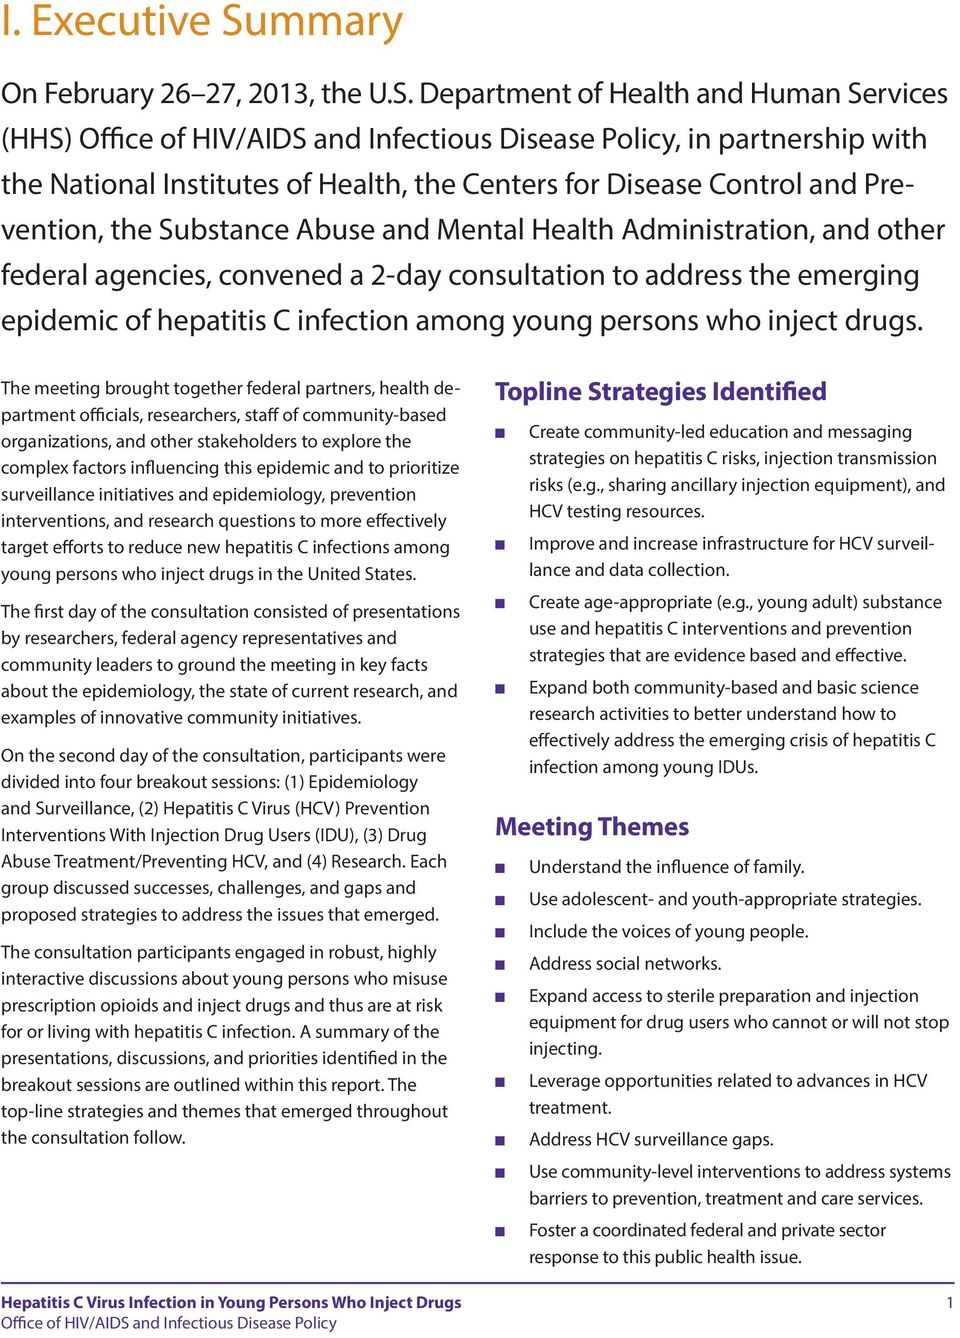 Department of Health and Human Services (HHS), in partnership with the National Institutes of Health, the Centers for Disease Control and Prevention, the Substance Abuse and Mental Health